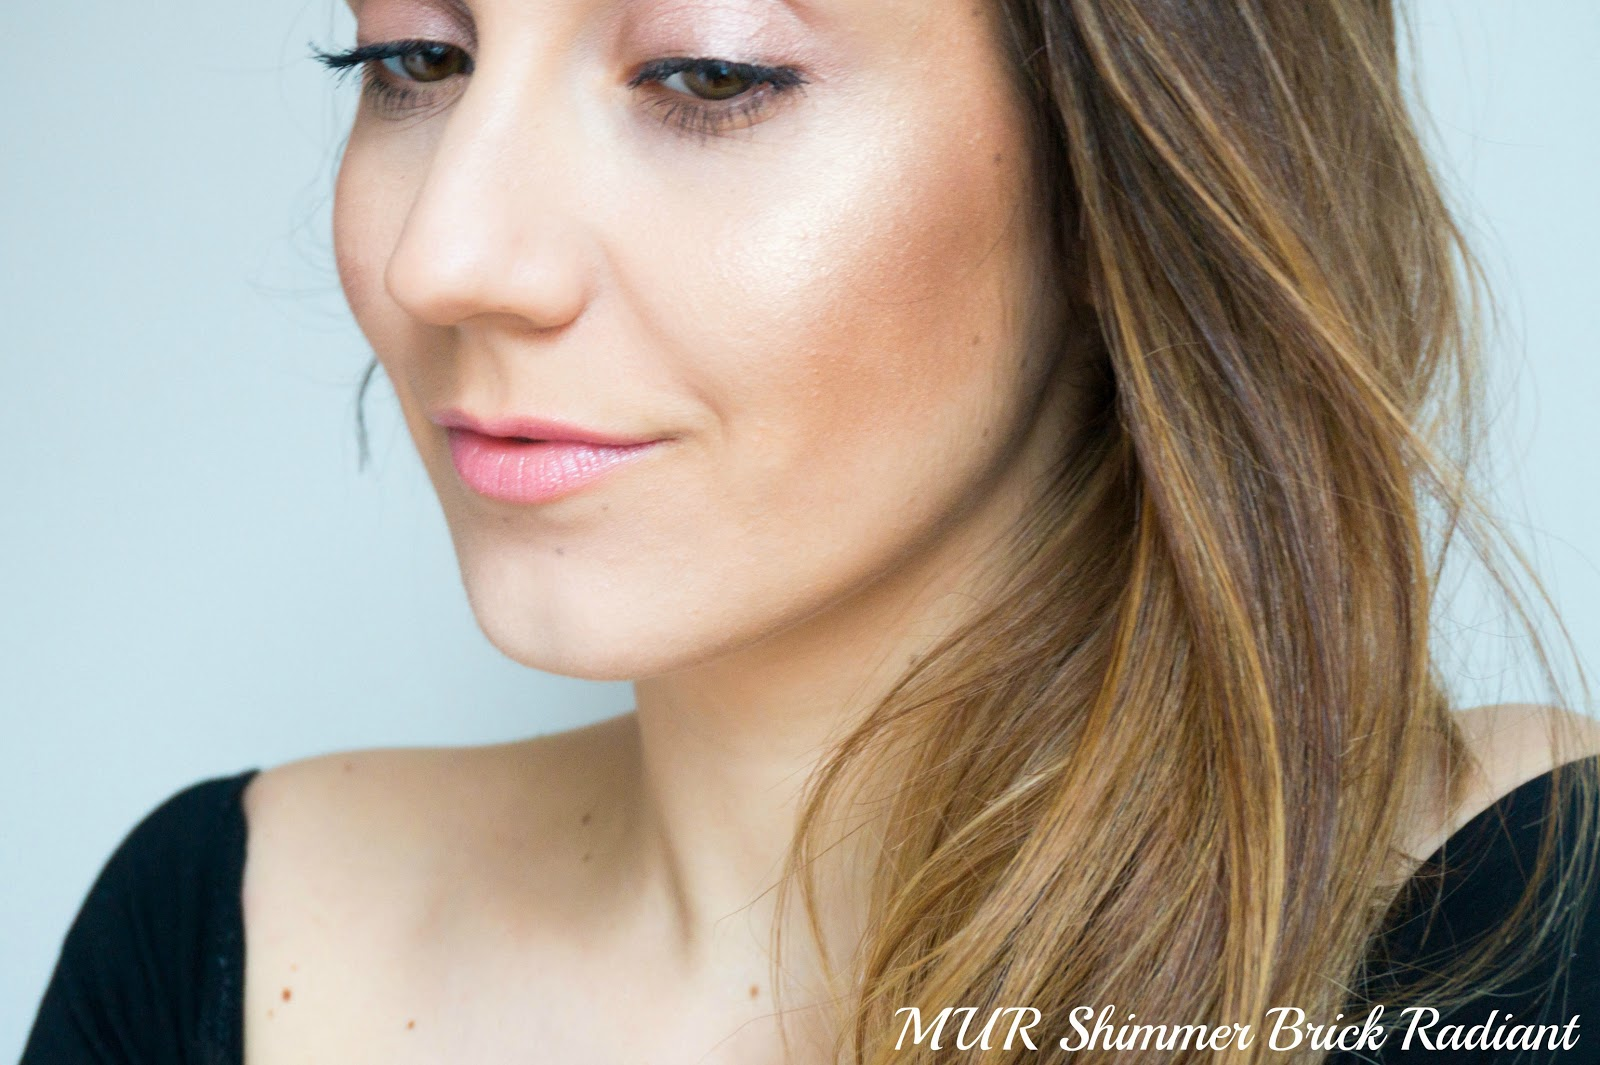 Makeup Revolution Shimmer Brick Radiant